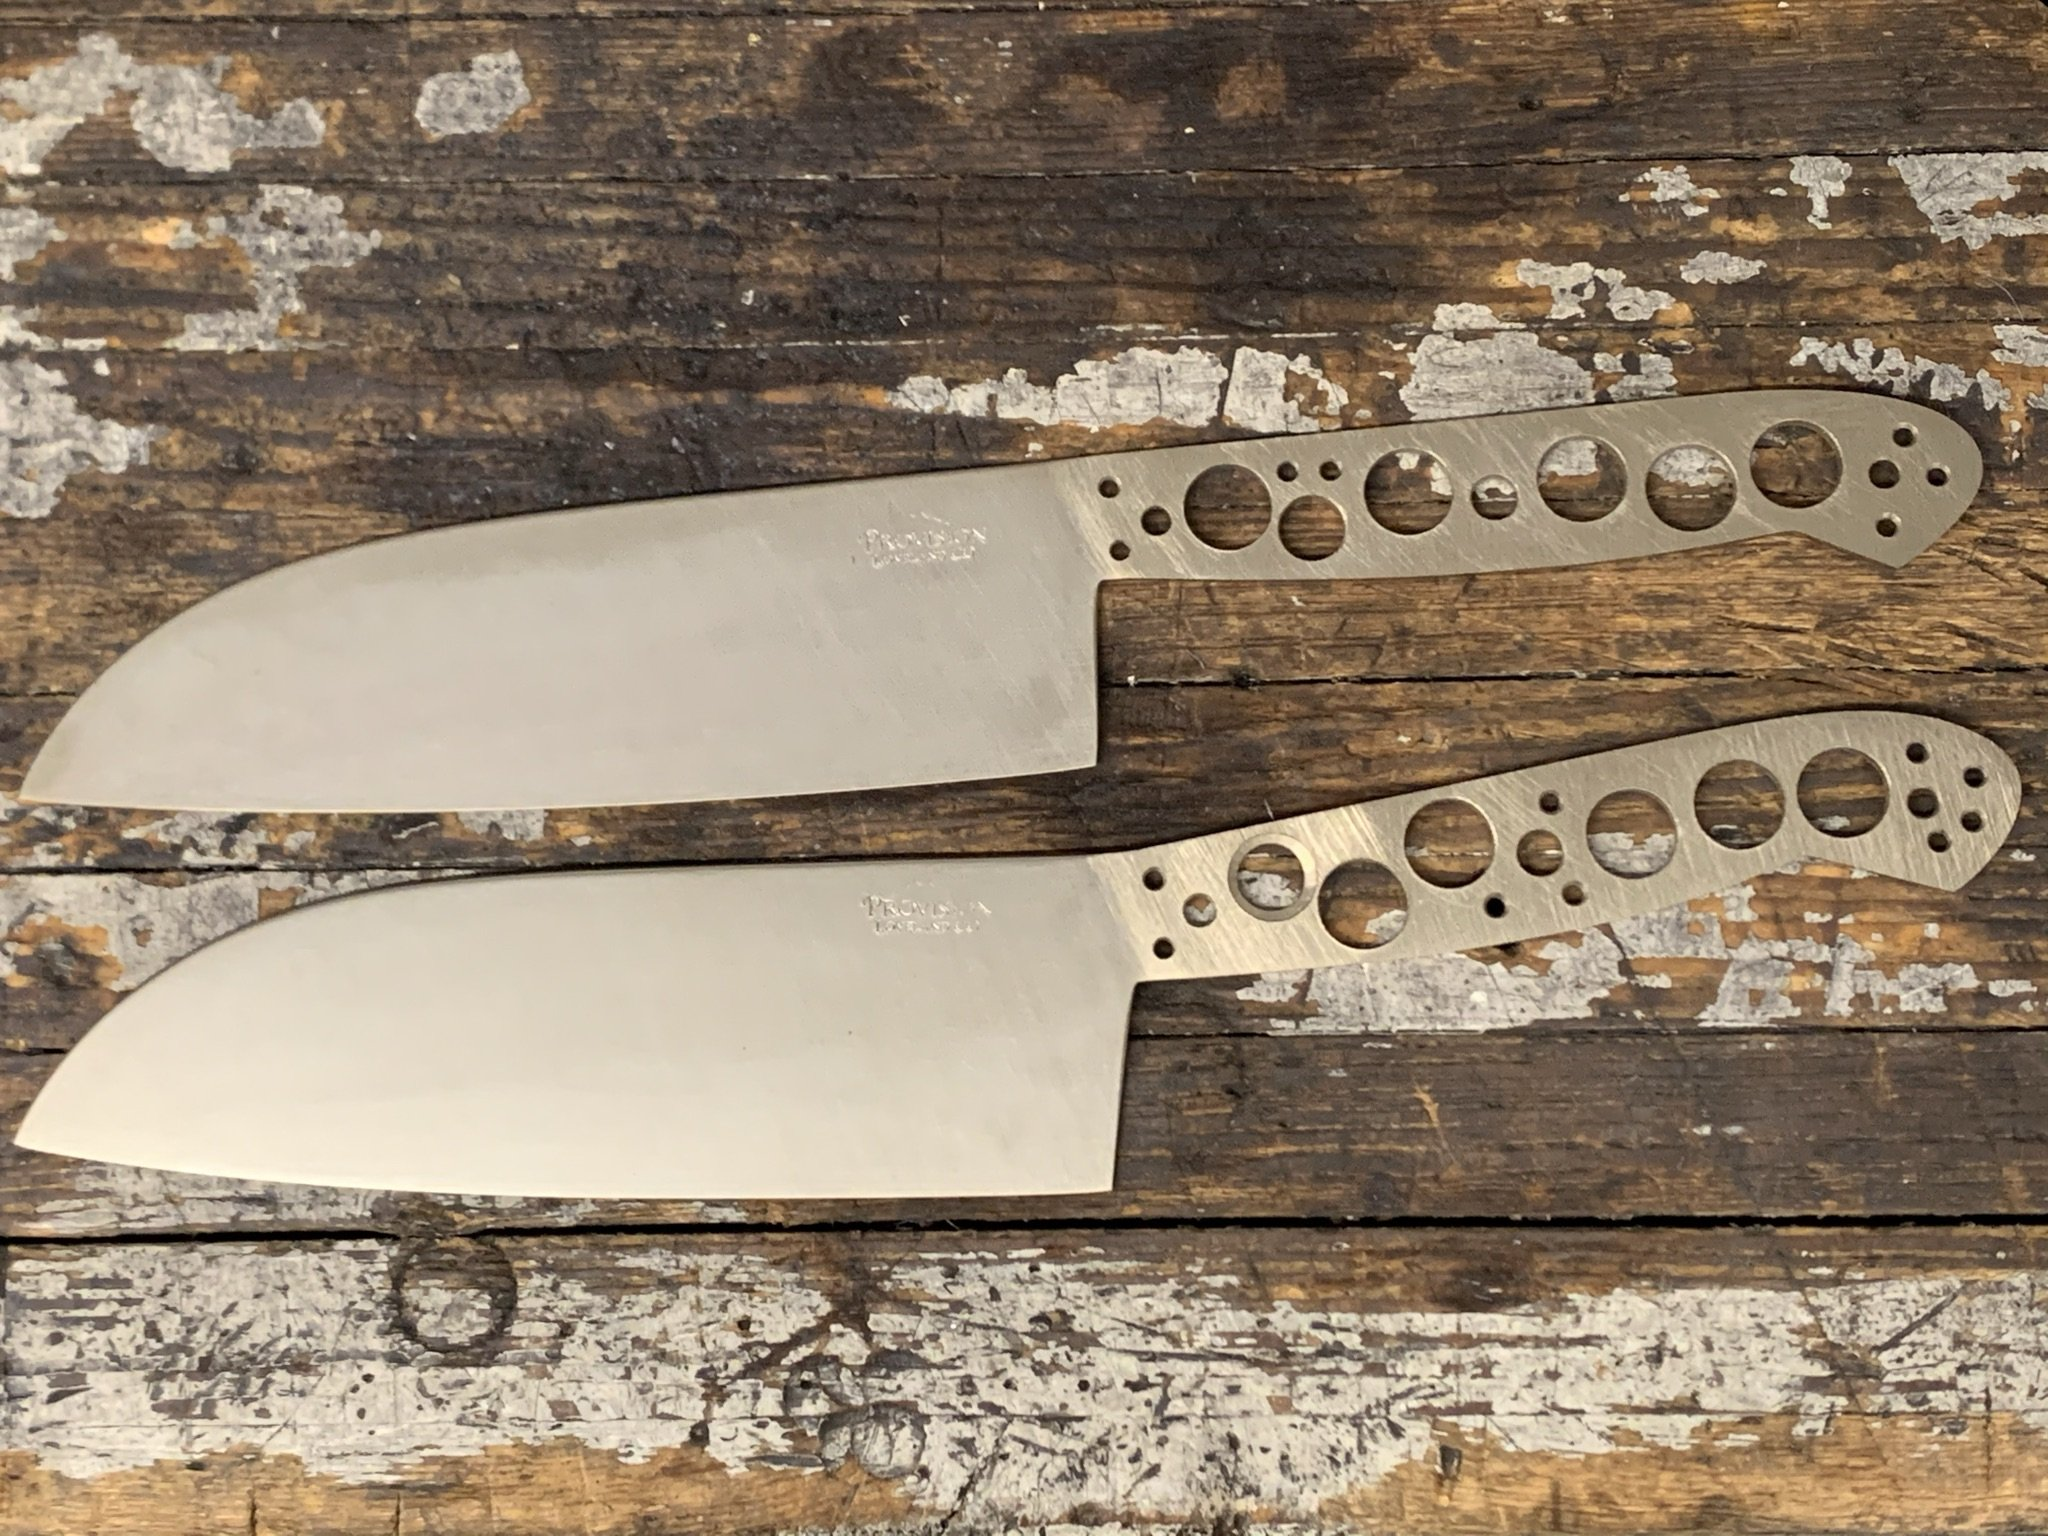 up close image of knives laying on table